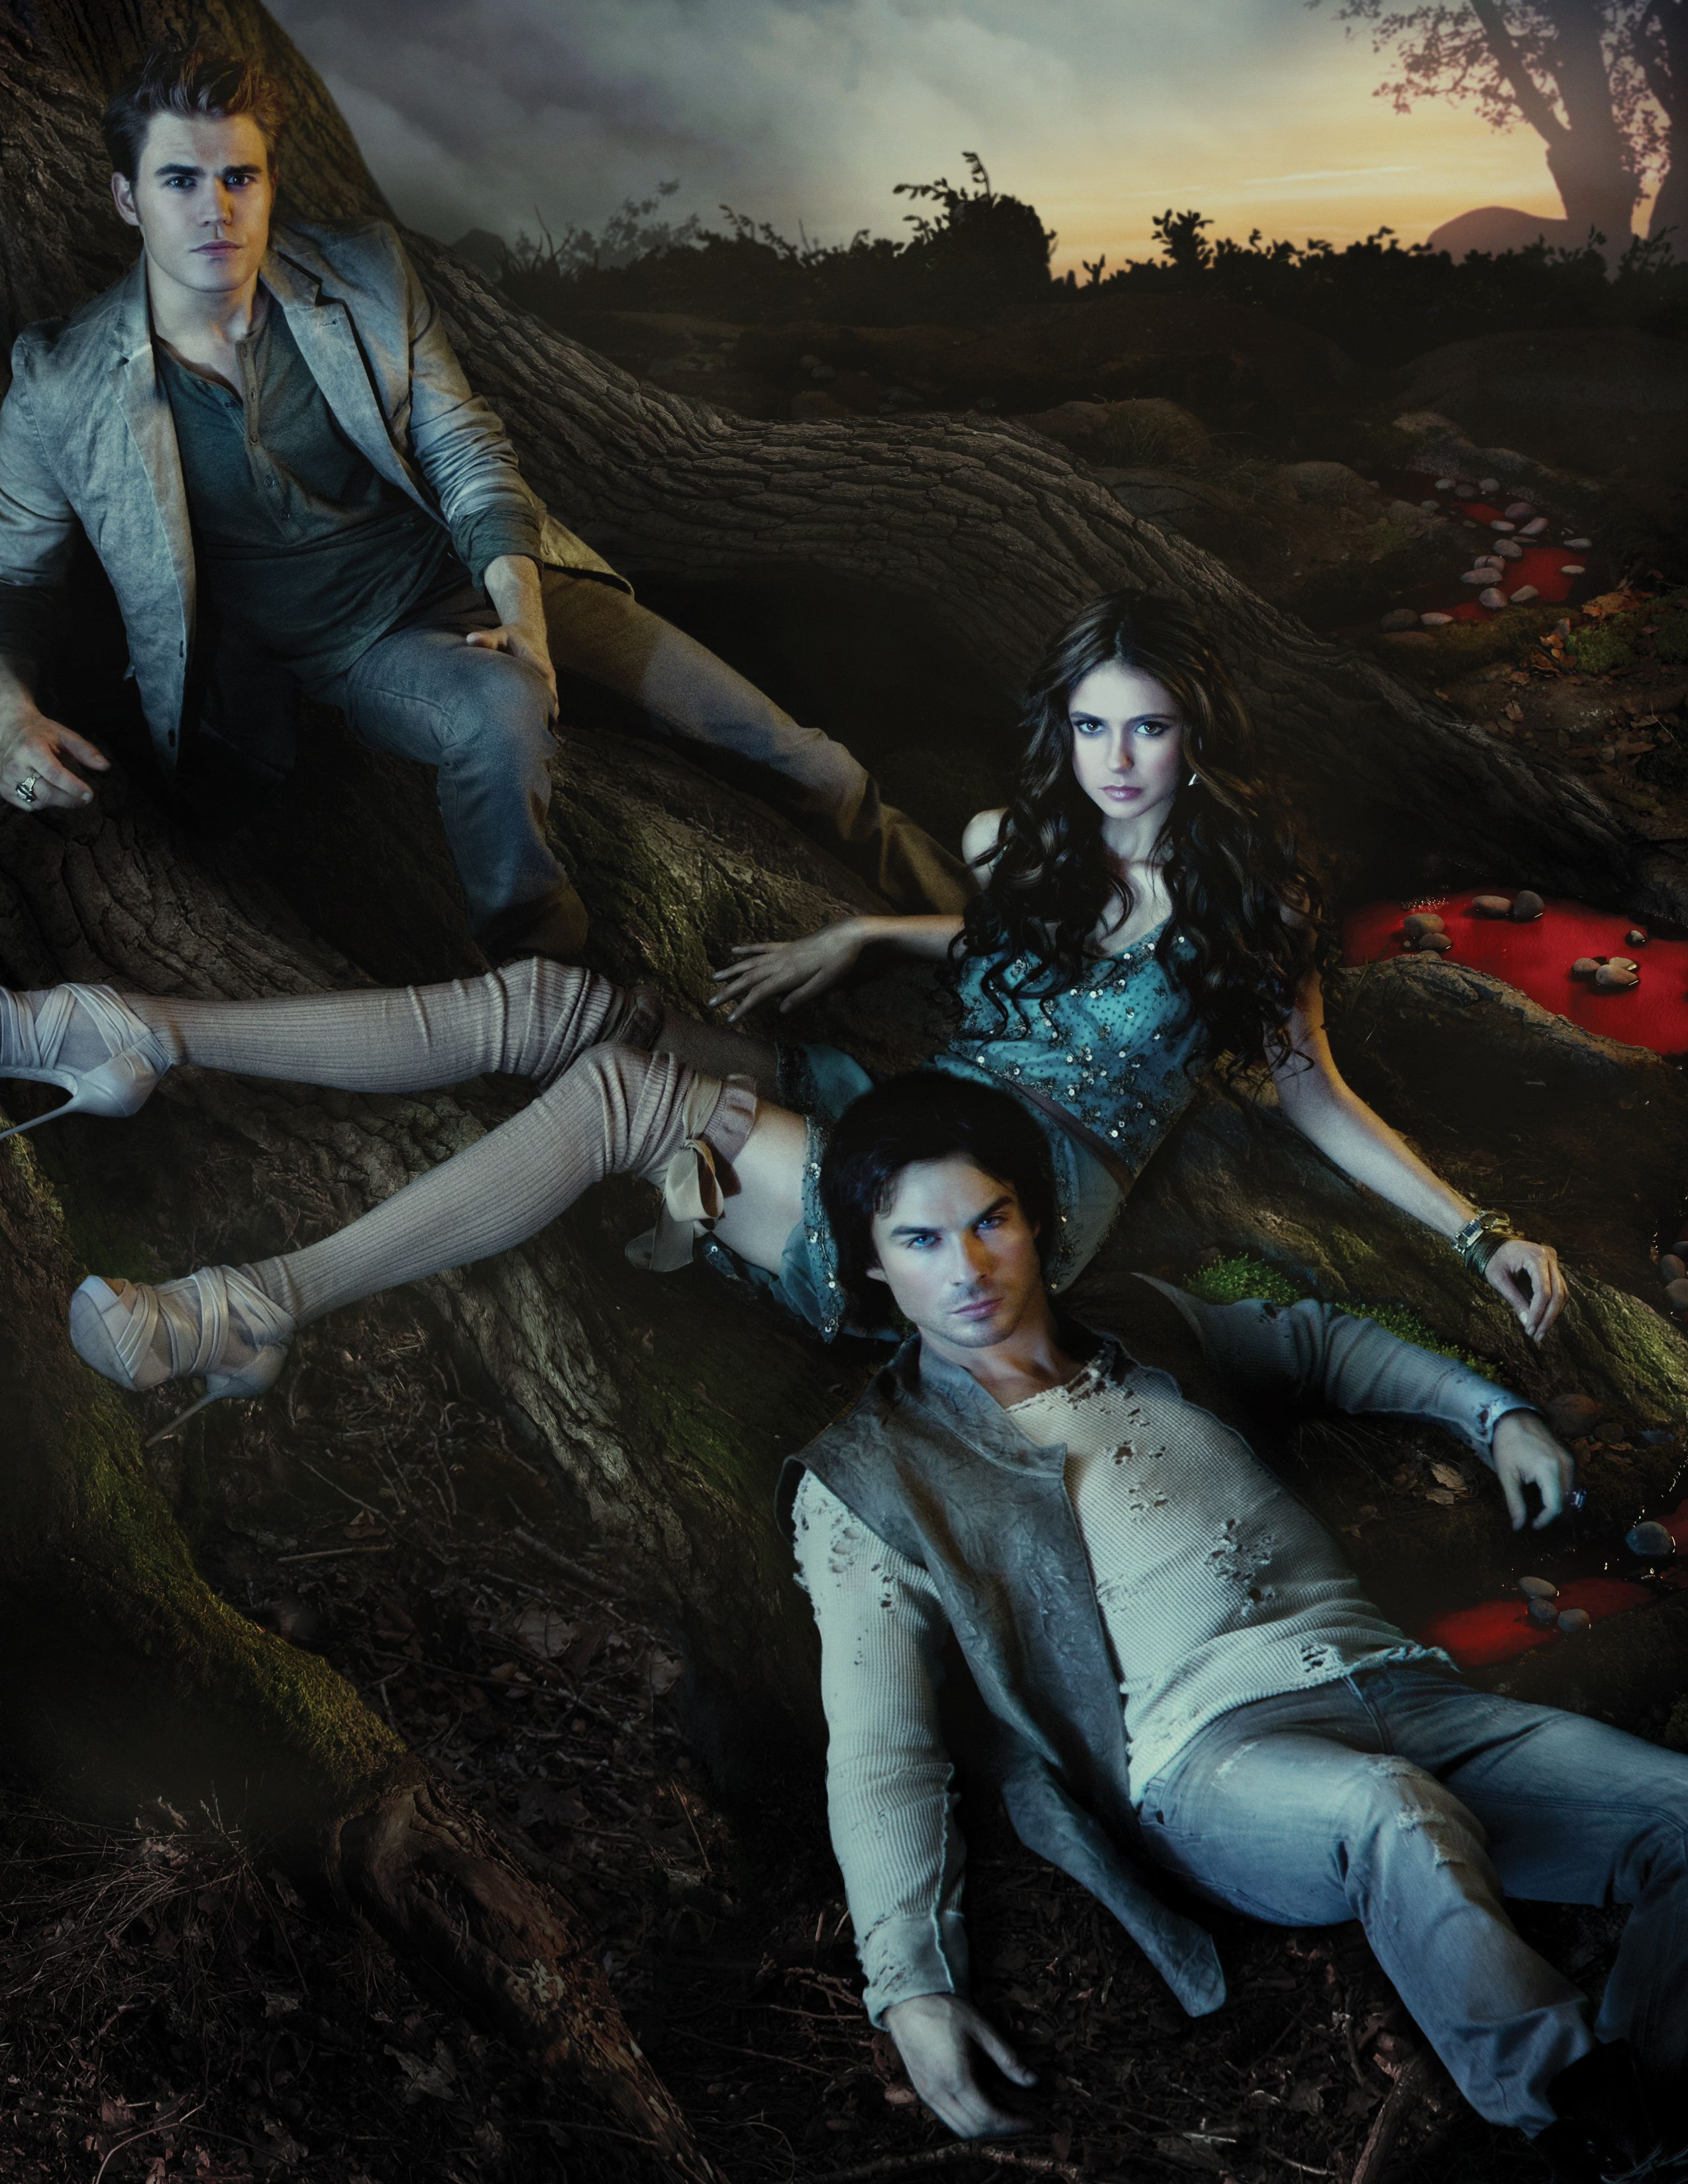 Warner Bros. TV returns to Comic-Con with TVD! Full 2012 lineup details here: bit.ly/KSpmcr #WBSDCC